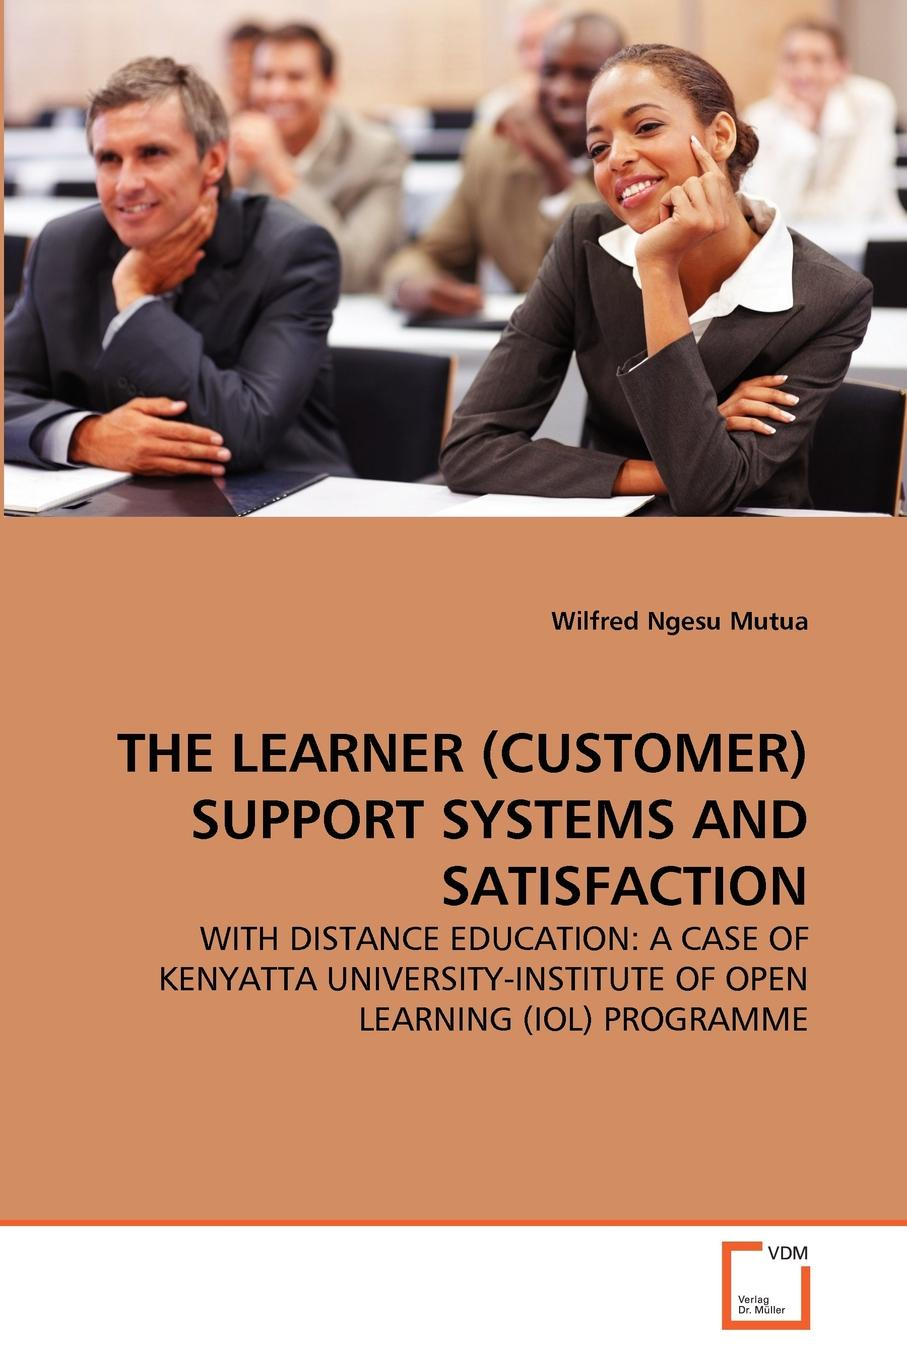 Wilfred Ngesu Mutua THE LEARNER (CUSTOMER) SUPPORT SYSTEMS AND SATISFACTION wilfred ngesu mutua the learner customer support systems and satisfaction